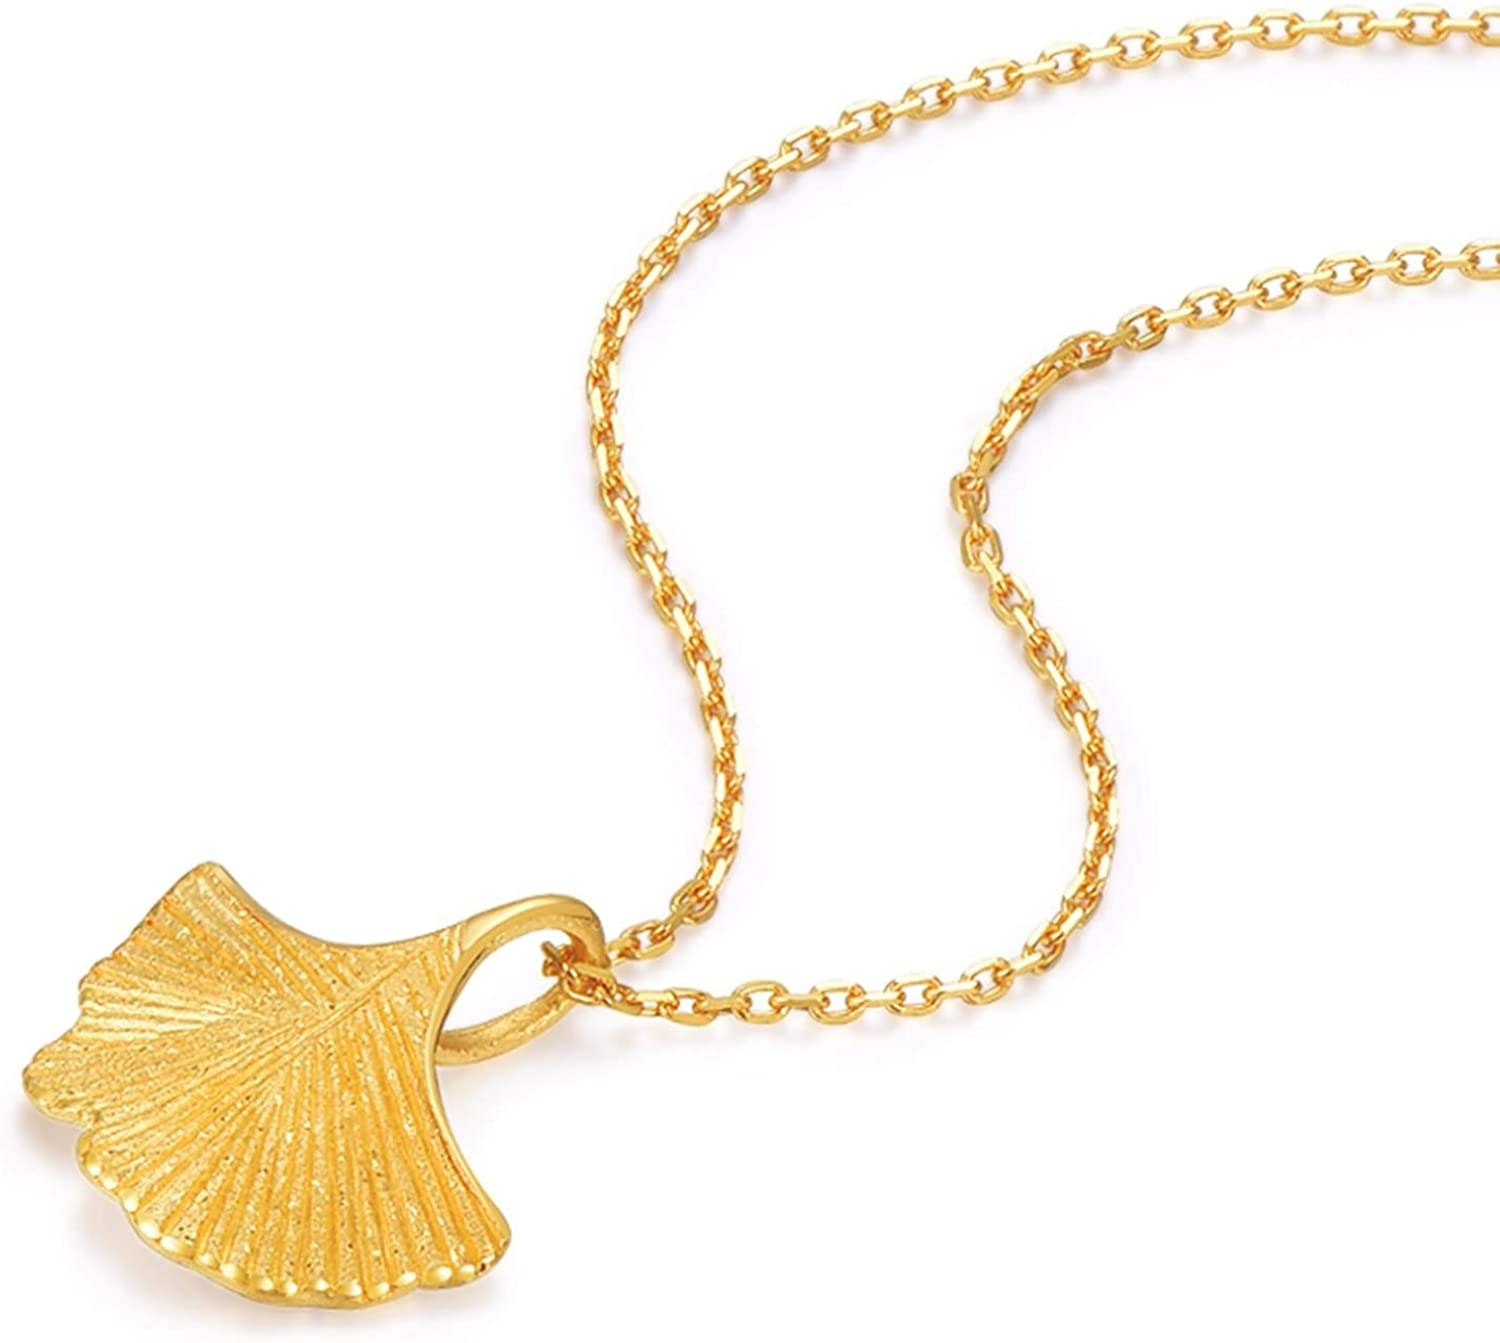 Epinki 18K Yellow Gold Women Delicate Sales of SALE items from new works Ginkgo Leaves Necklace Sale item Nec